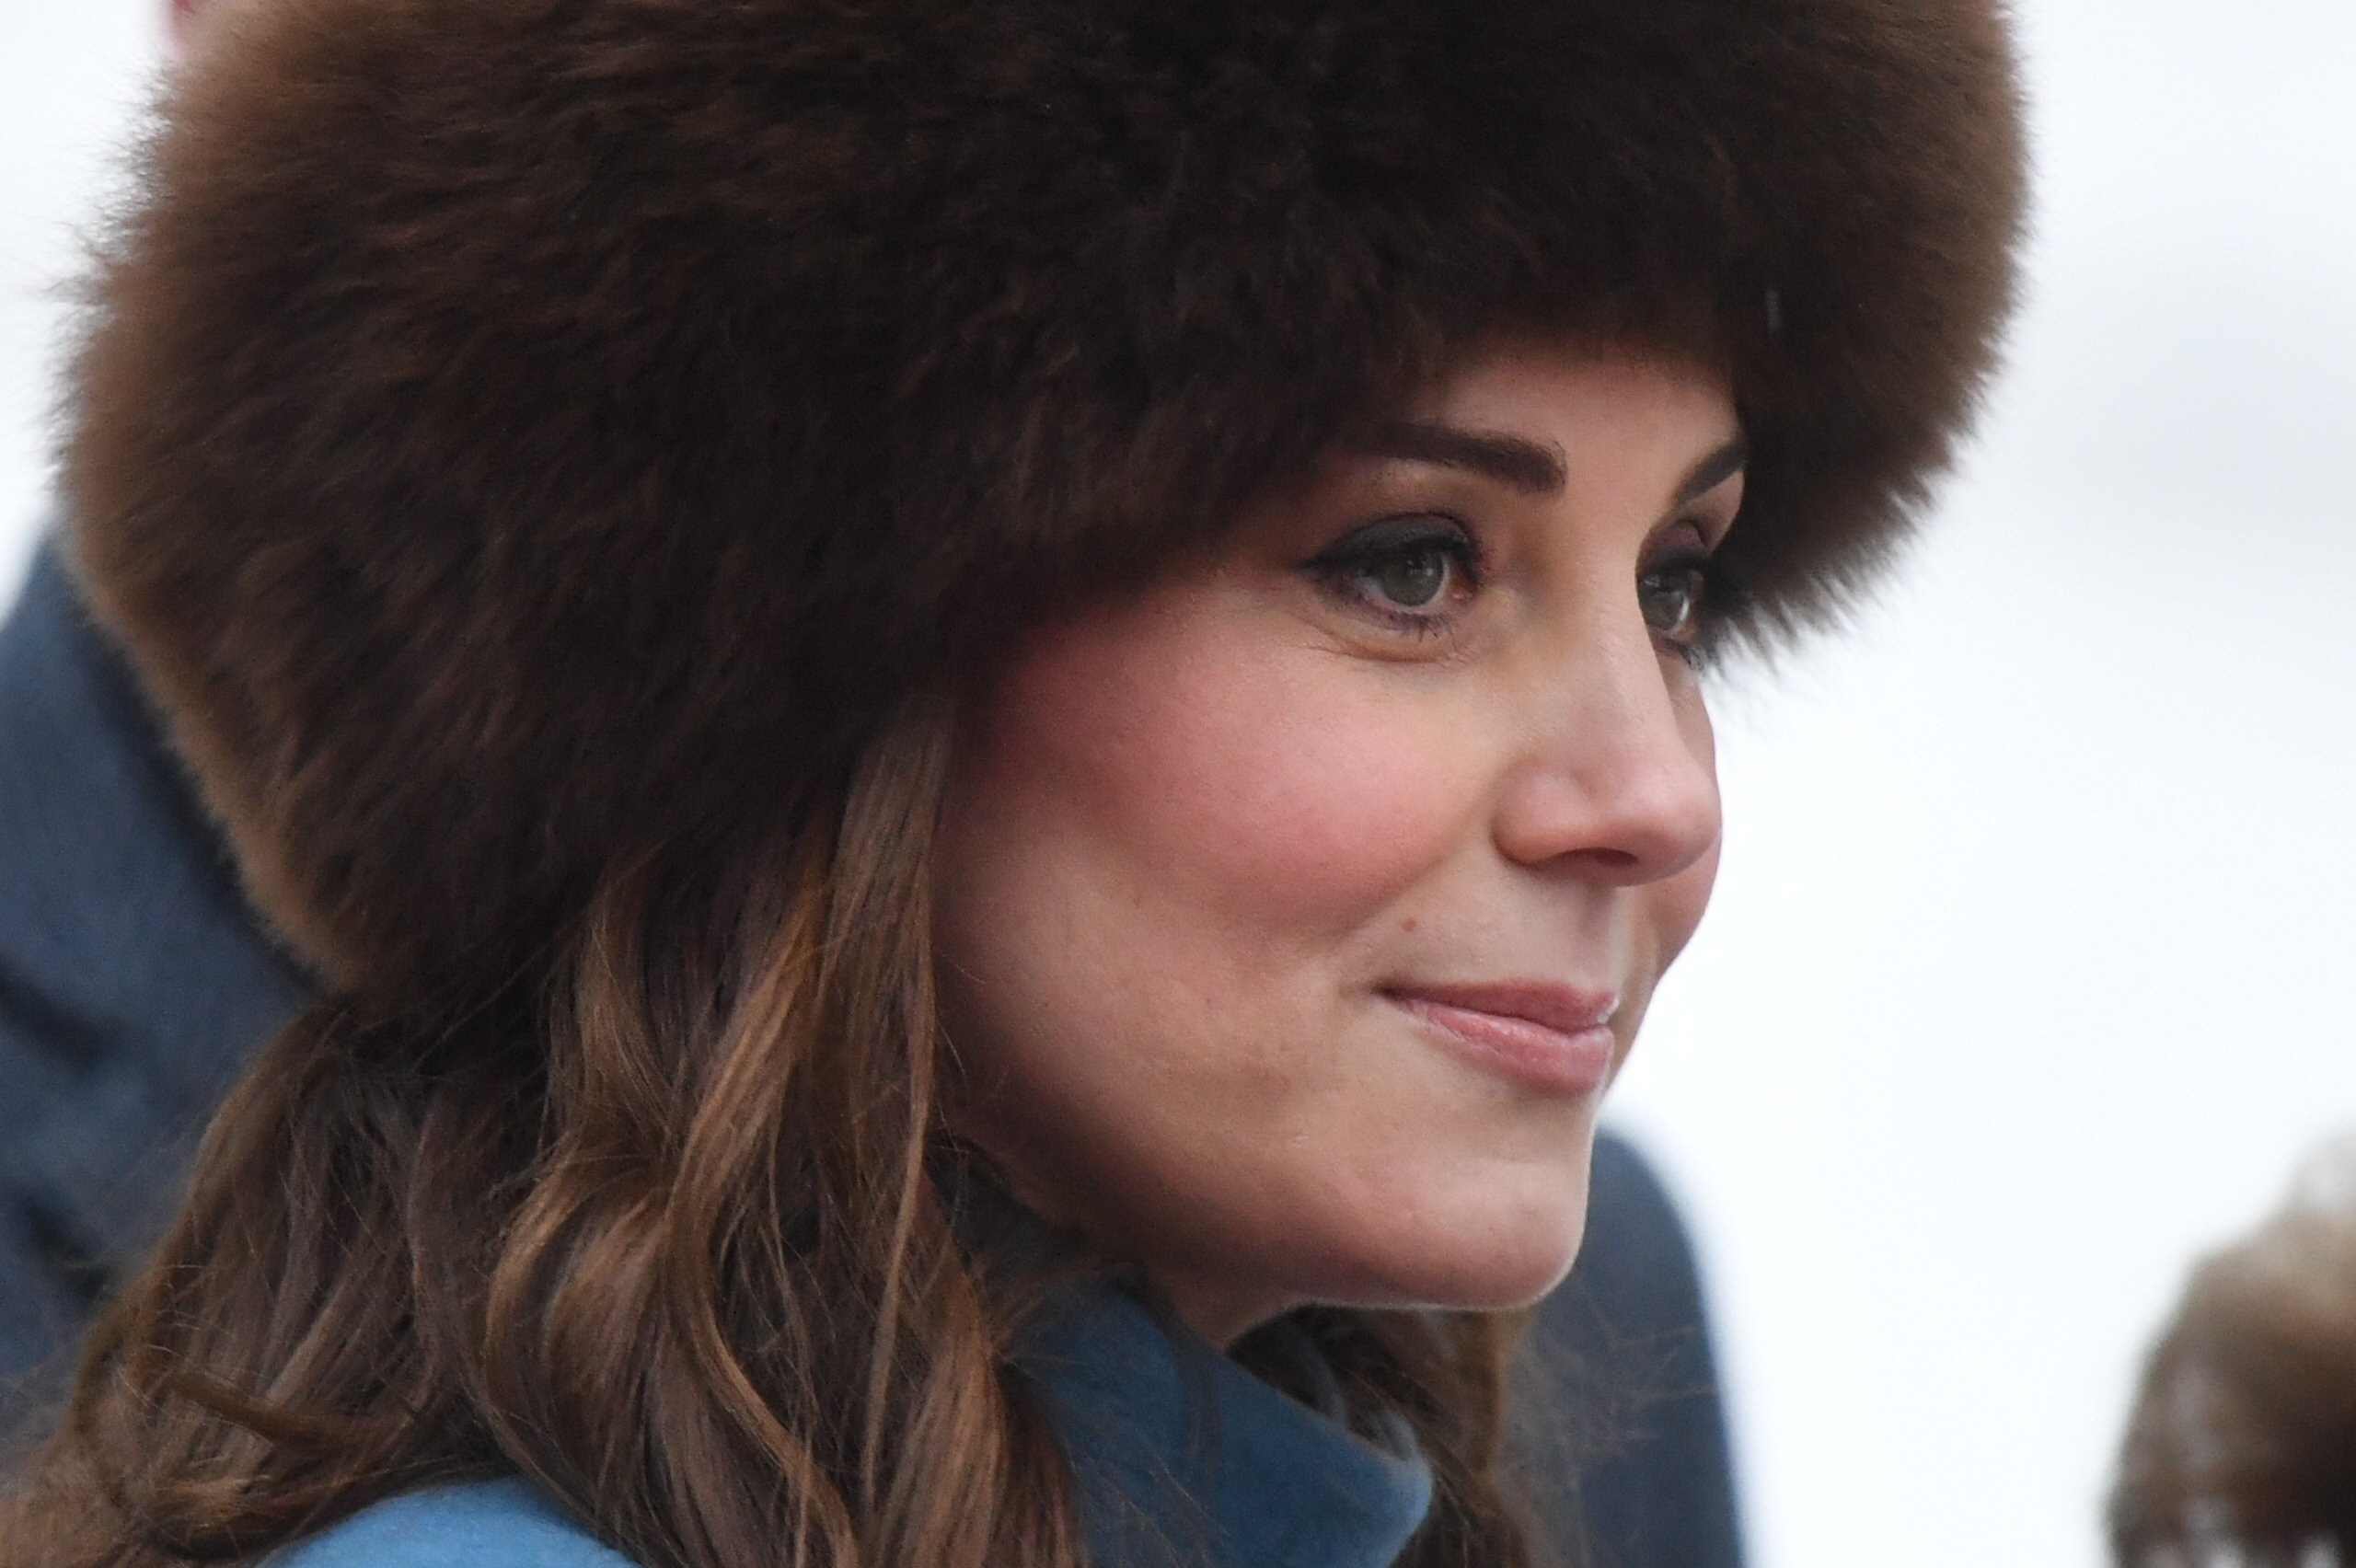 The Duchess of Cambridge smiles to the waiting crowd (Victoria Jones/PA)